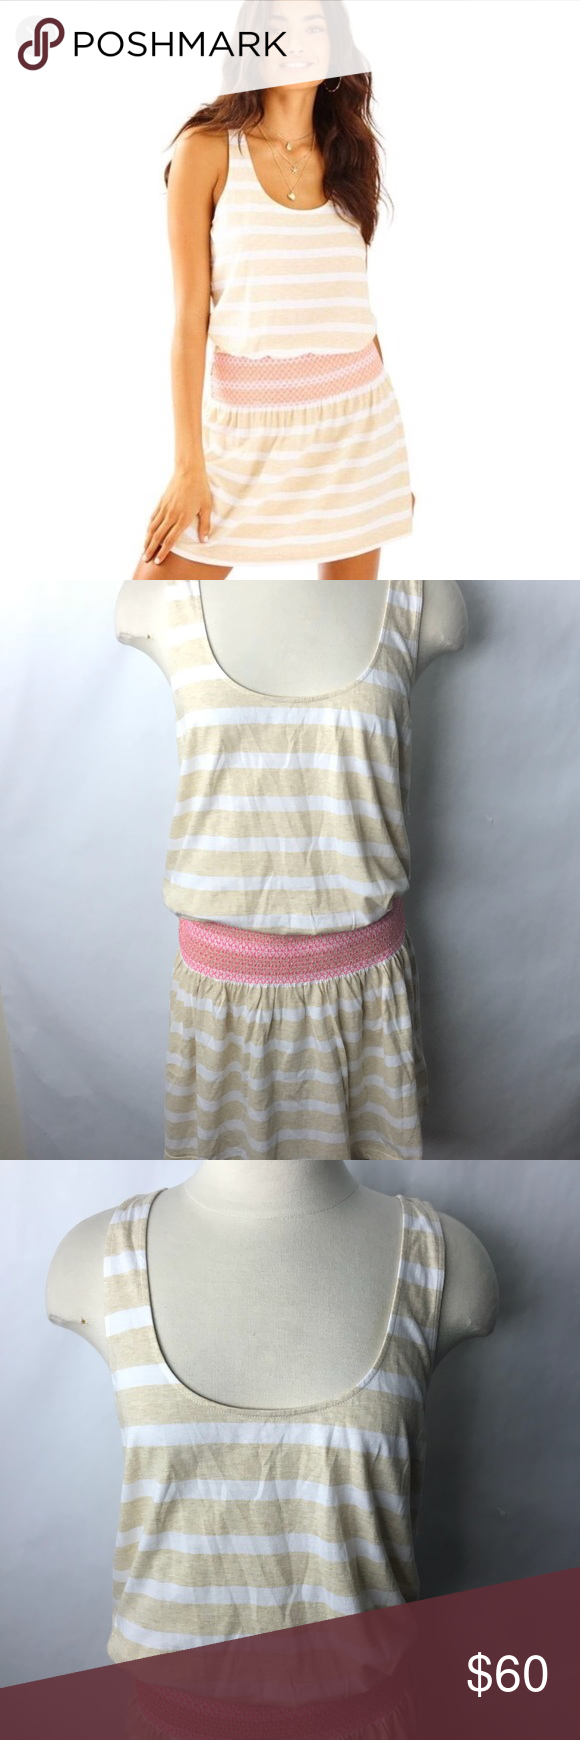 "a160aac9f47fff Lilly Pulitzer tideline dress sandy sand bar L NEW Lilly Pulitzer tideline  dress Heathered sandy sand bar Sundress Slub Knit 📏 Ap to ap 19.5"" Length  38"" ..."